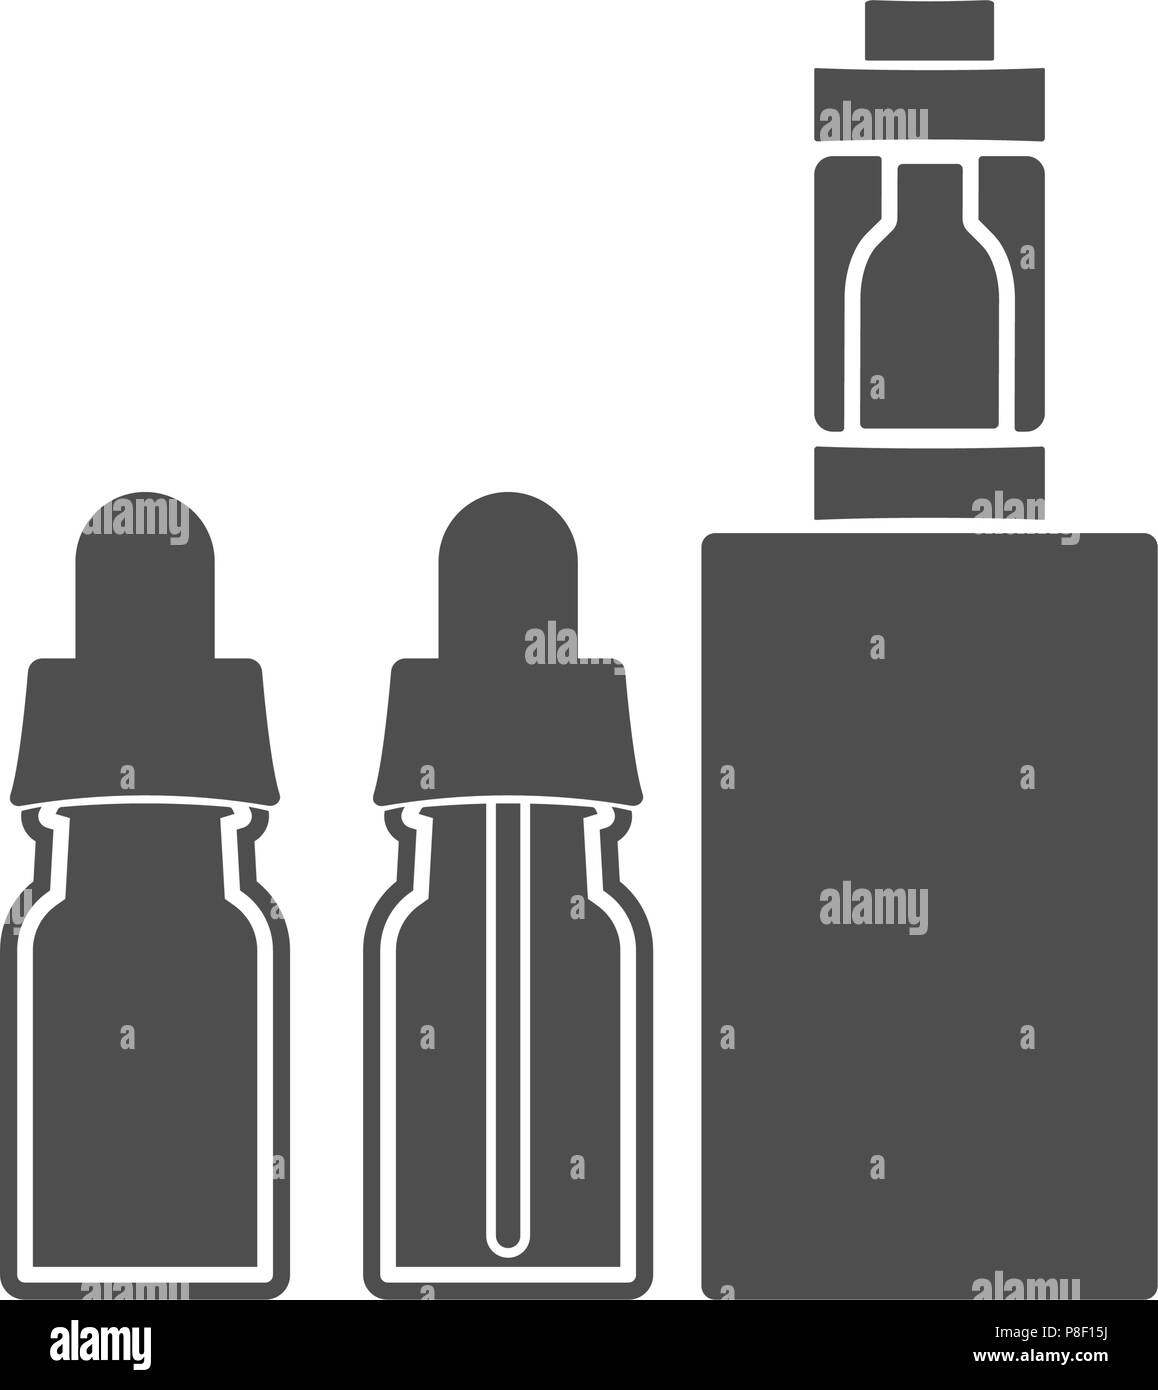 Electronic cigarette with bottles of liquid. Vector illustration - Stock Image